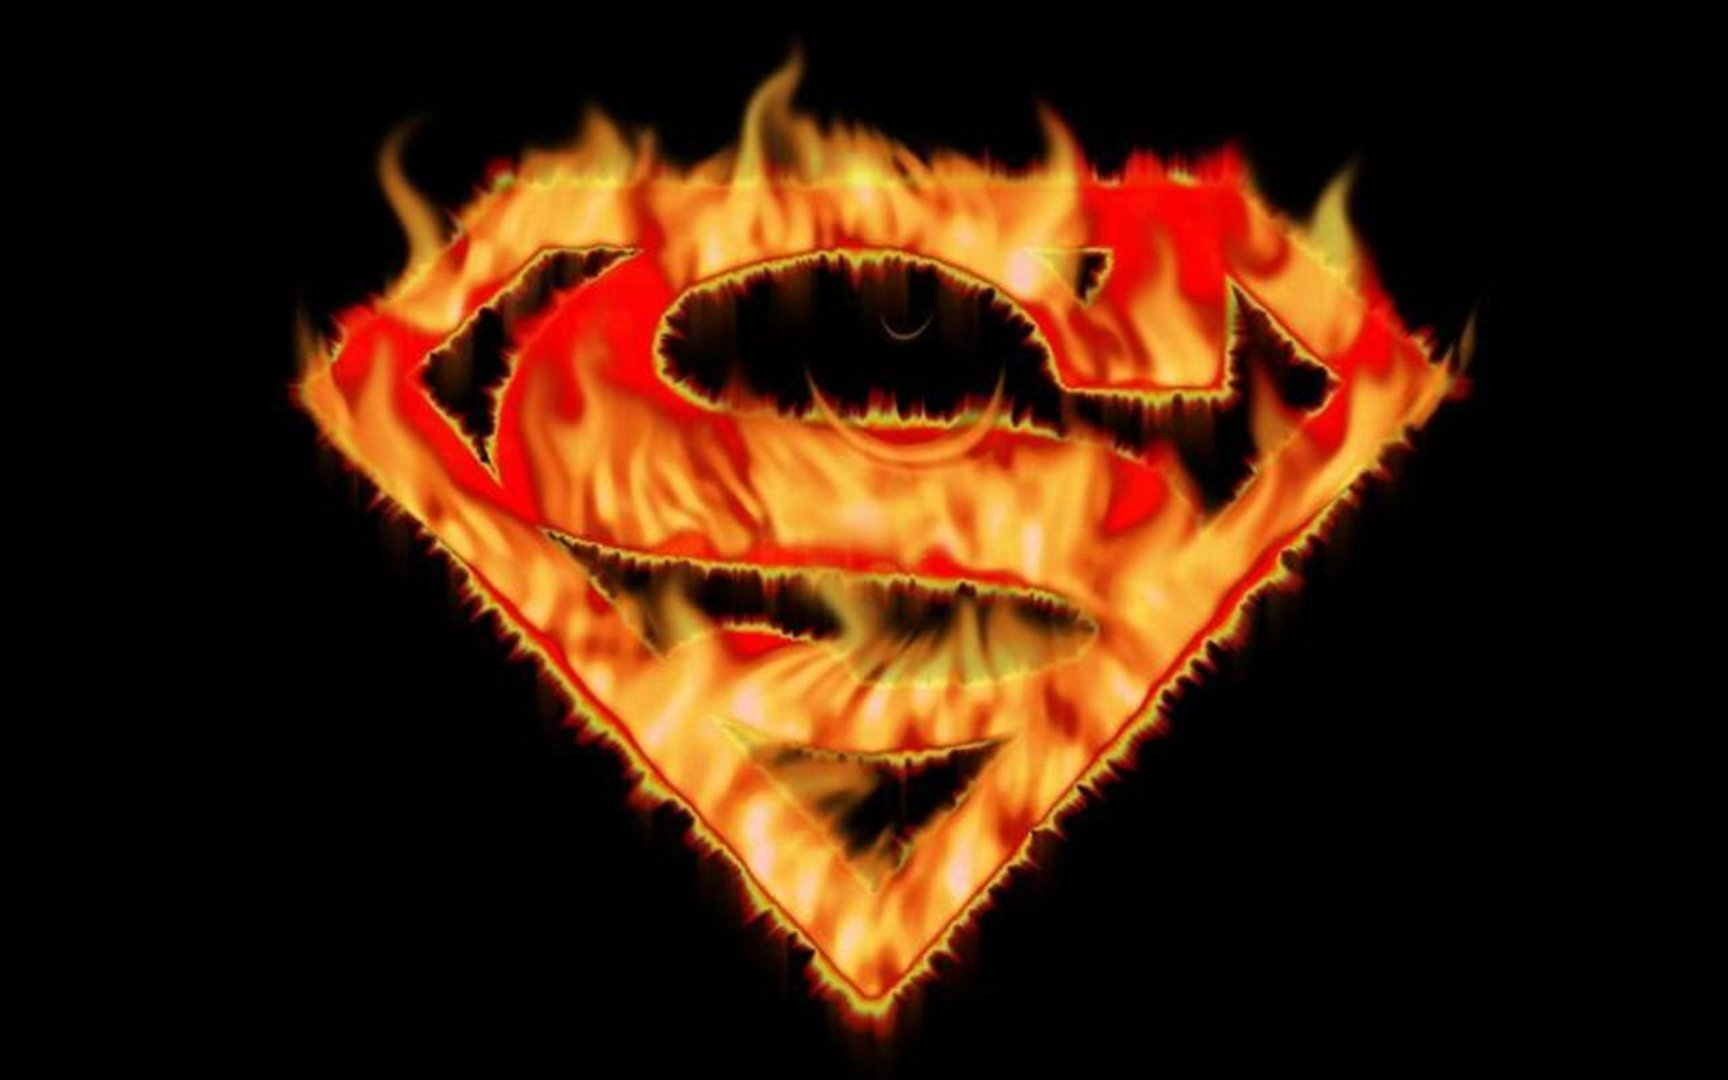 Flames Superman Resolution 1920x1080 pixelsuper cool hd wallpapers 1728x1080